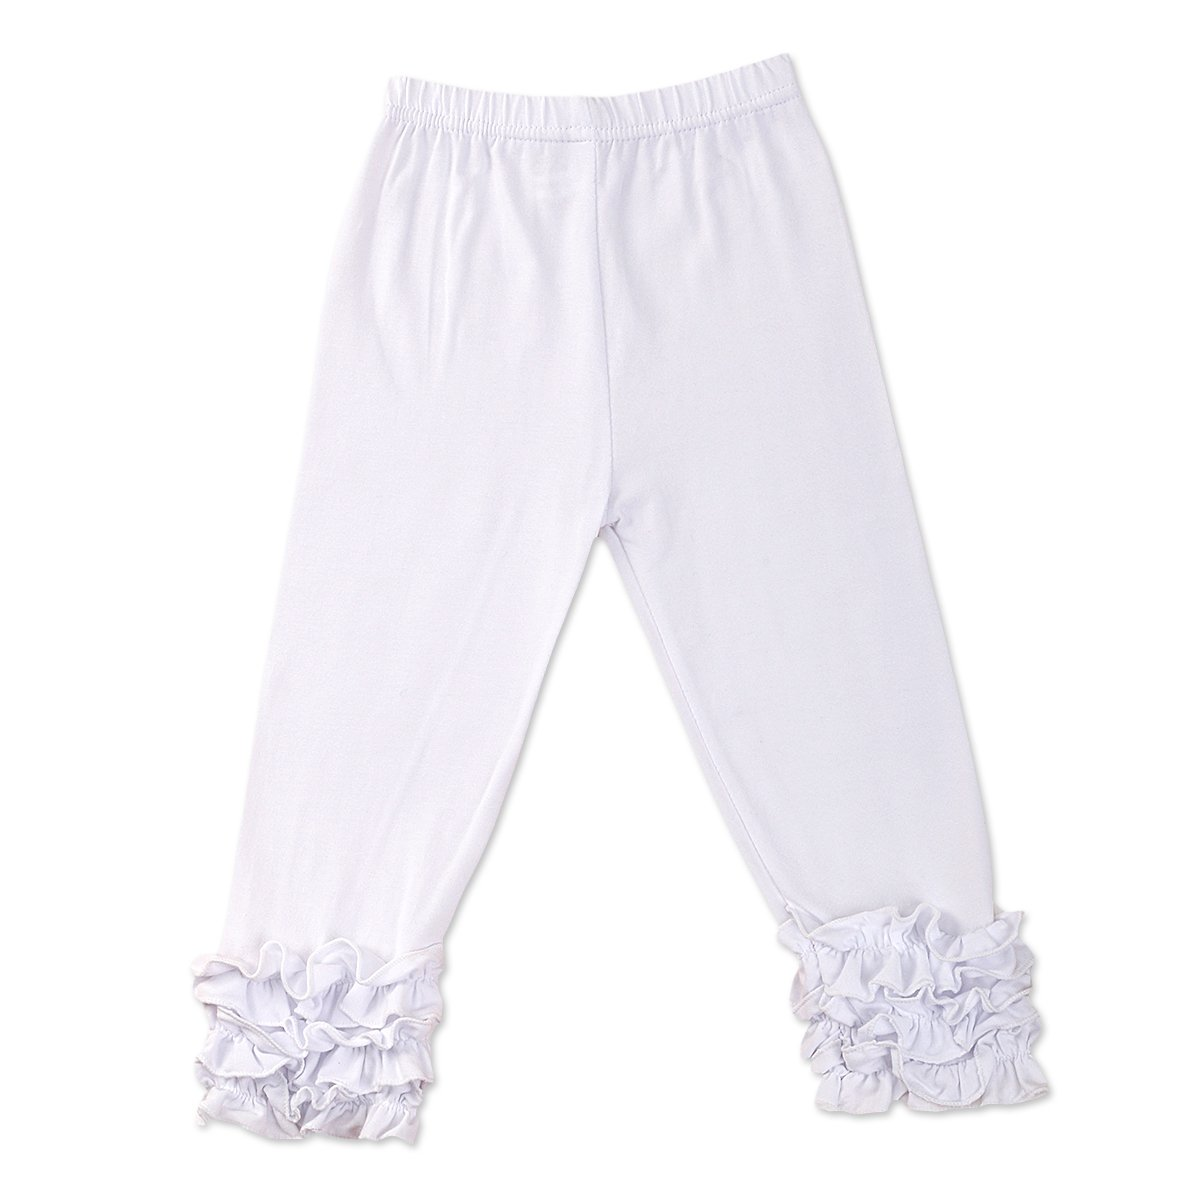 IBTOM CASTLE Baby Girls Layered Double Icing Ruffle Cotton Shorts Bottoms Boutique Summer Pants … Ivory 12 Months by IBTOM CASTLE (Image #1)